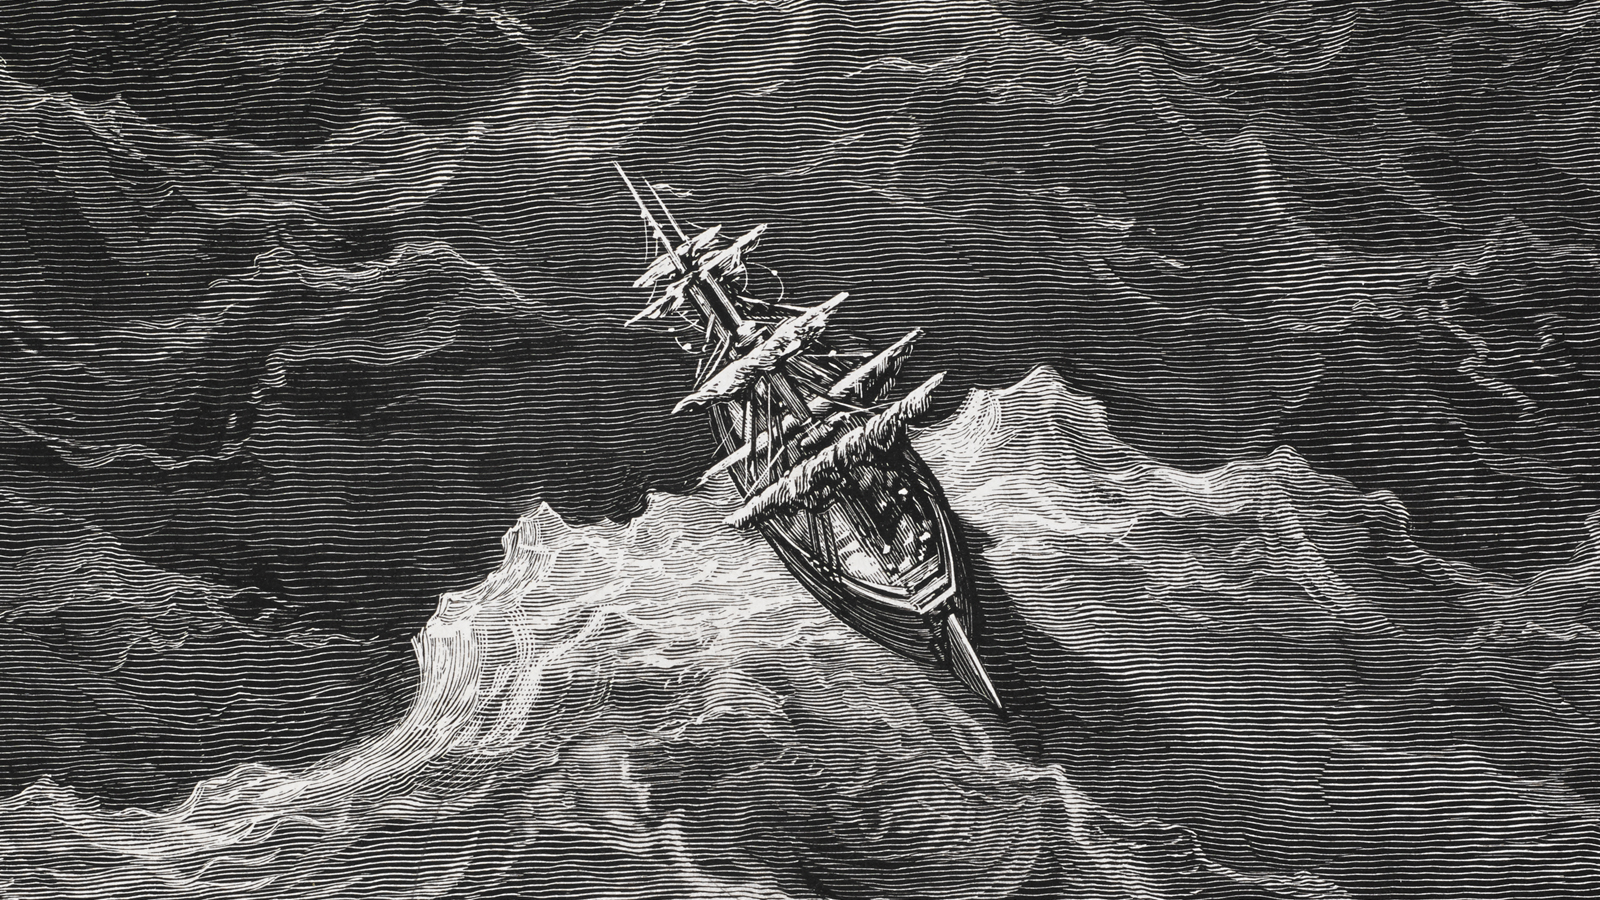 An introduction to The Rime of the Ancient Mariner